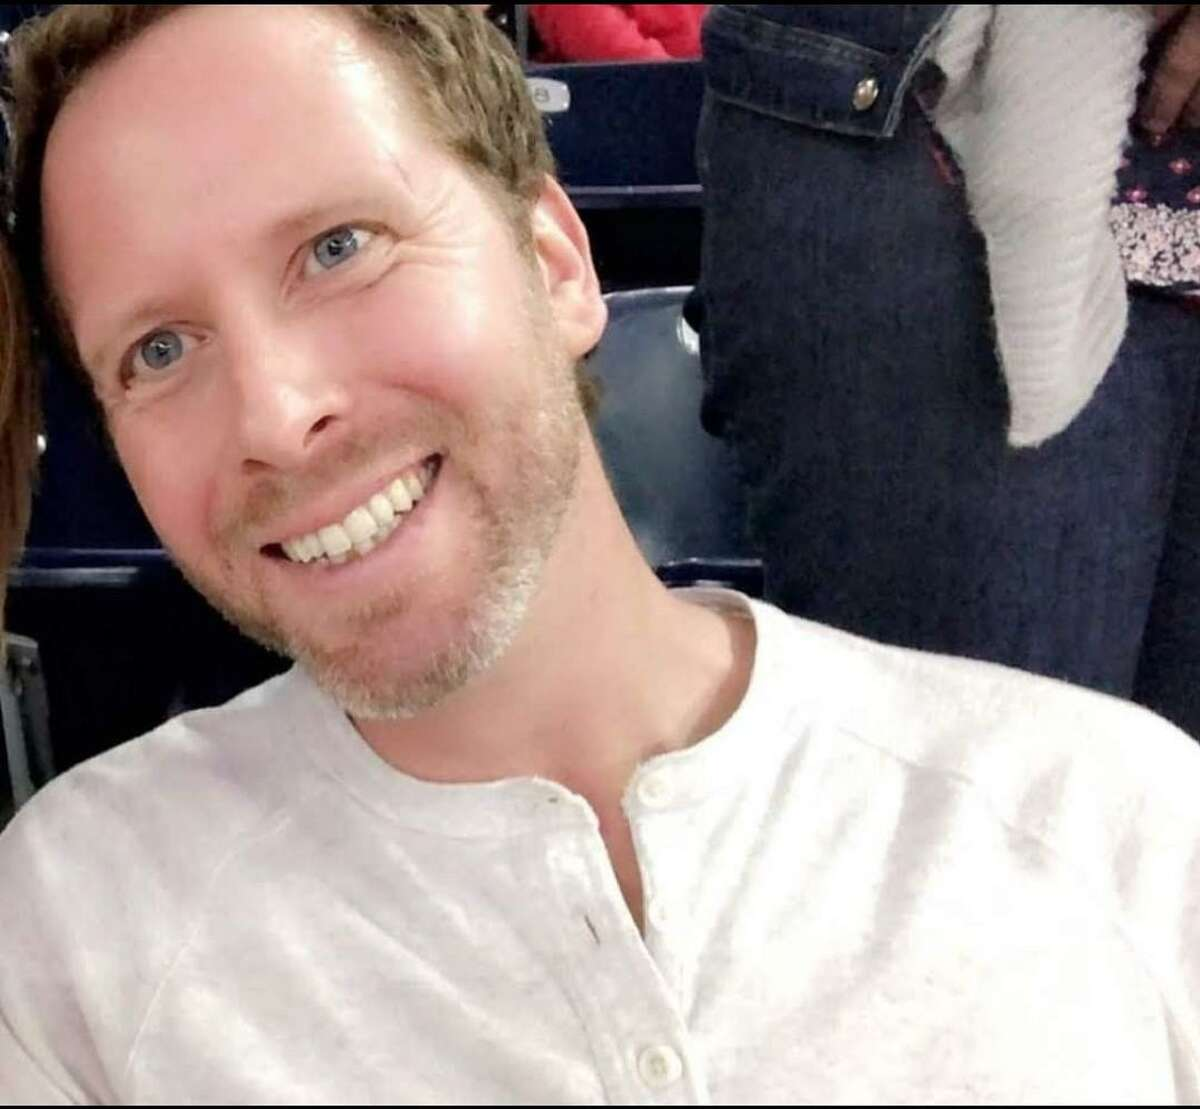 Aaron Balaban is shown in an undated photo provided by family members. Authorities believe that remains found at a League City construction site on June 28, 2021 are those of Balaban, a 36-year-old Iraq war veteran who went missing in 2020.